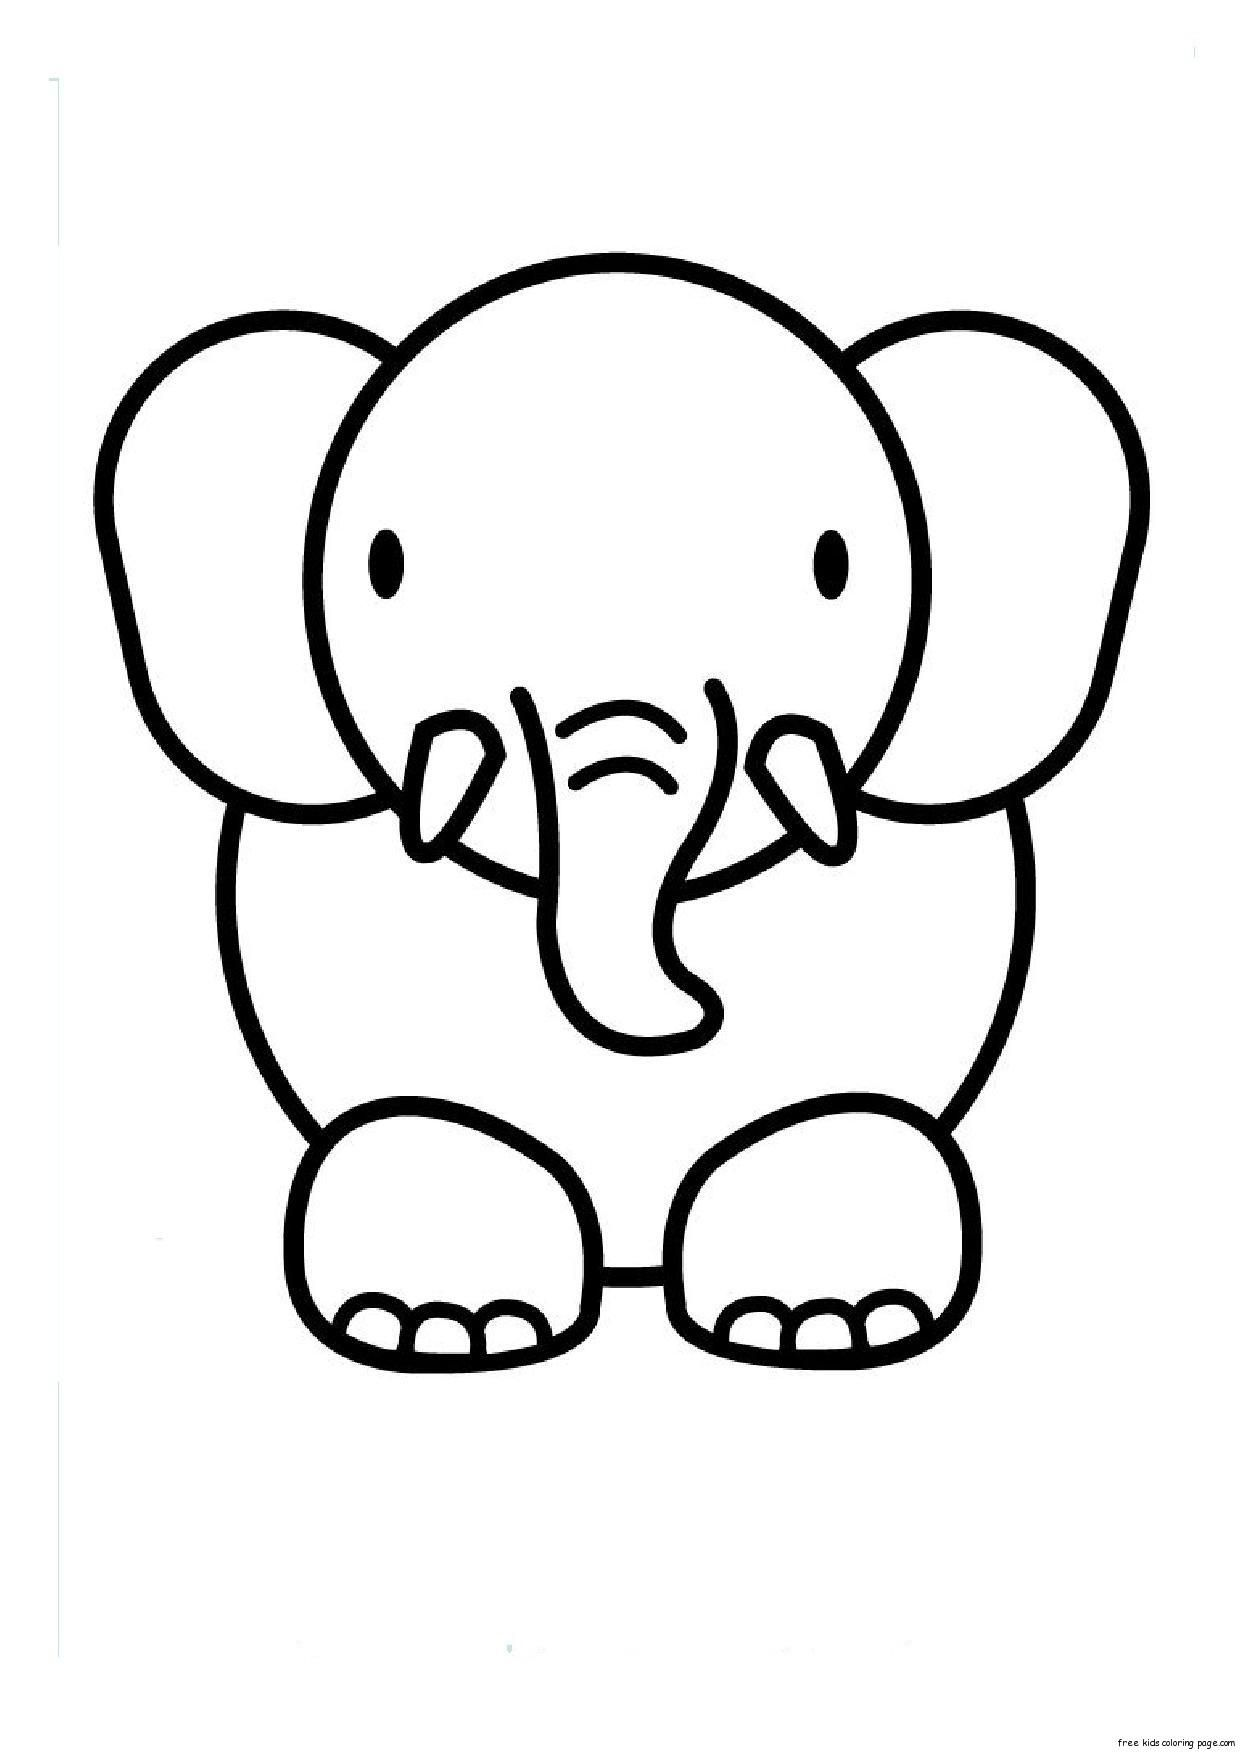 1240x1754 Simple Animal Coloring Pages Simple Colorings